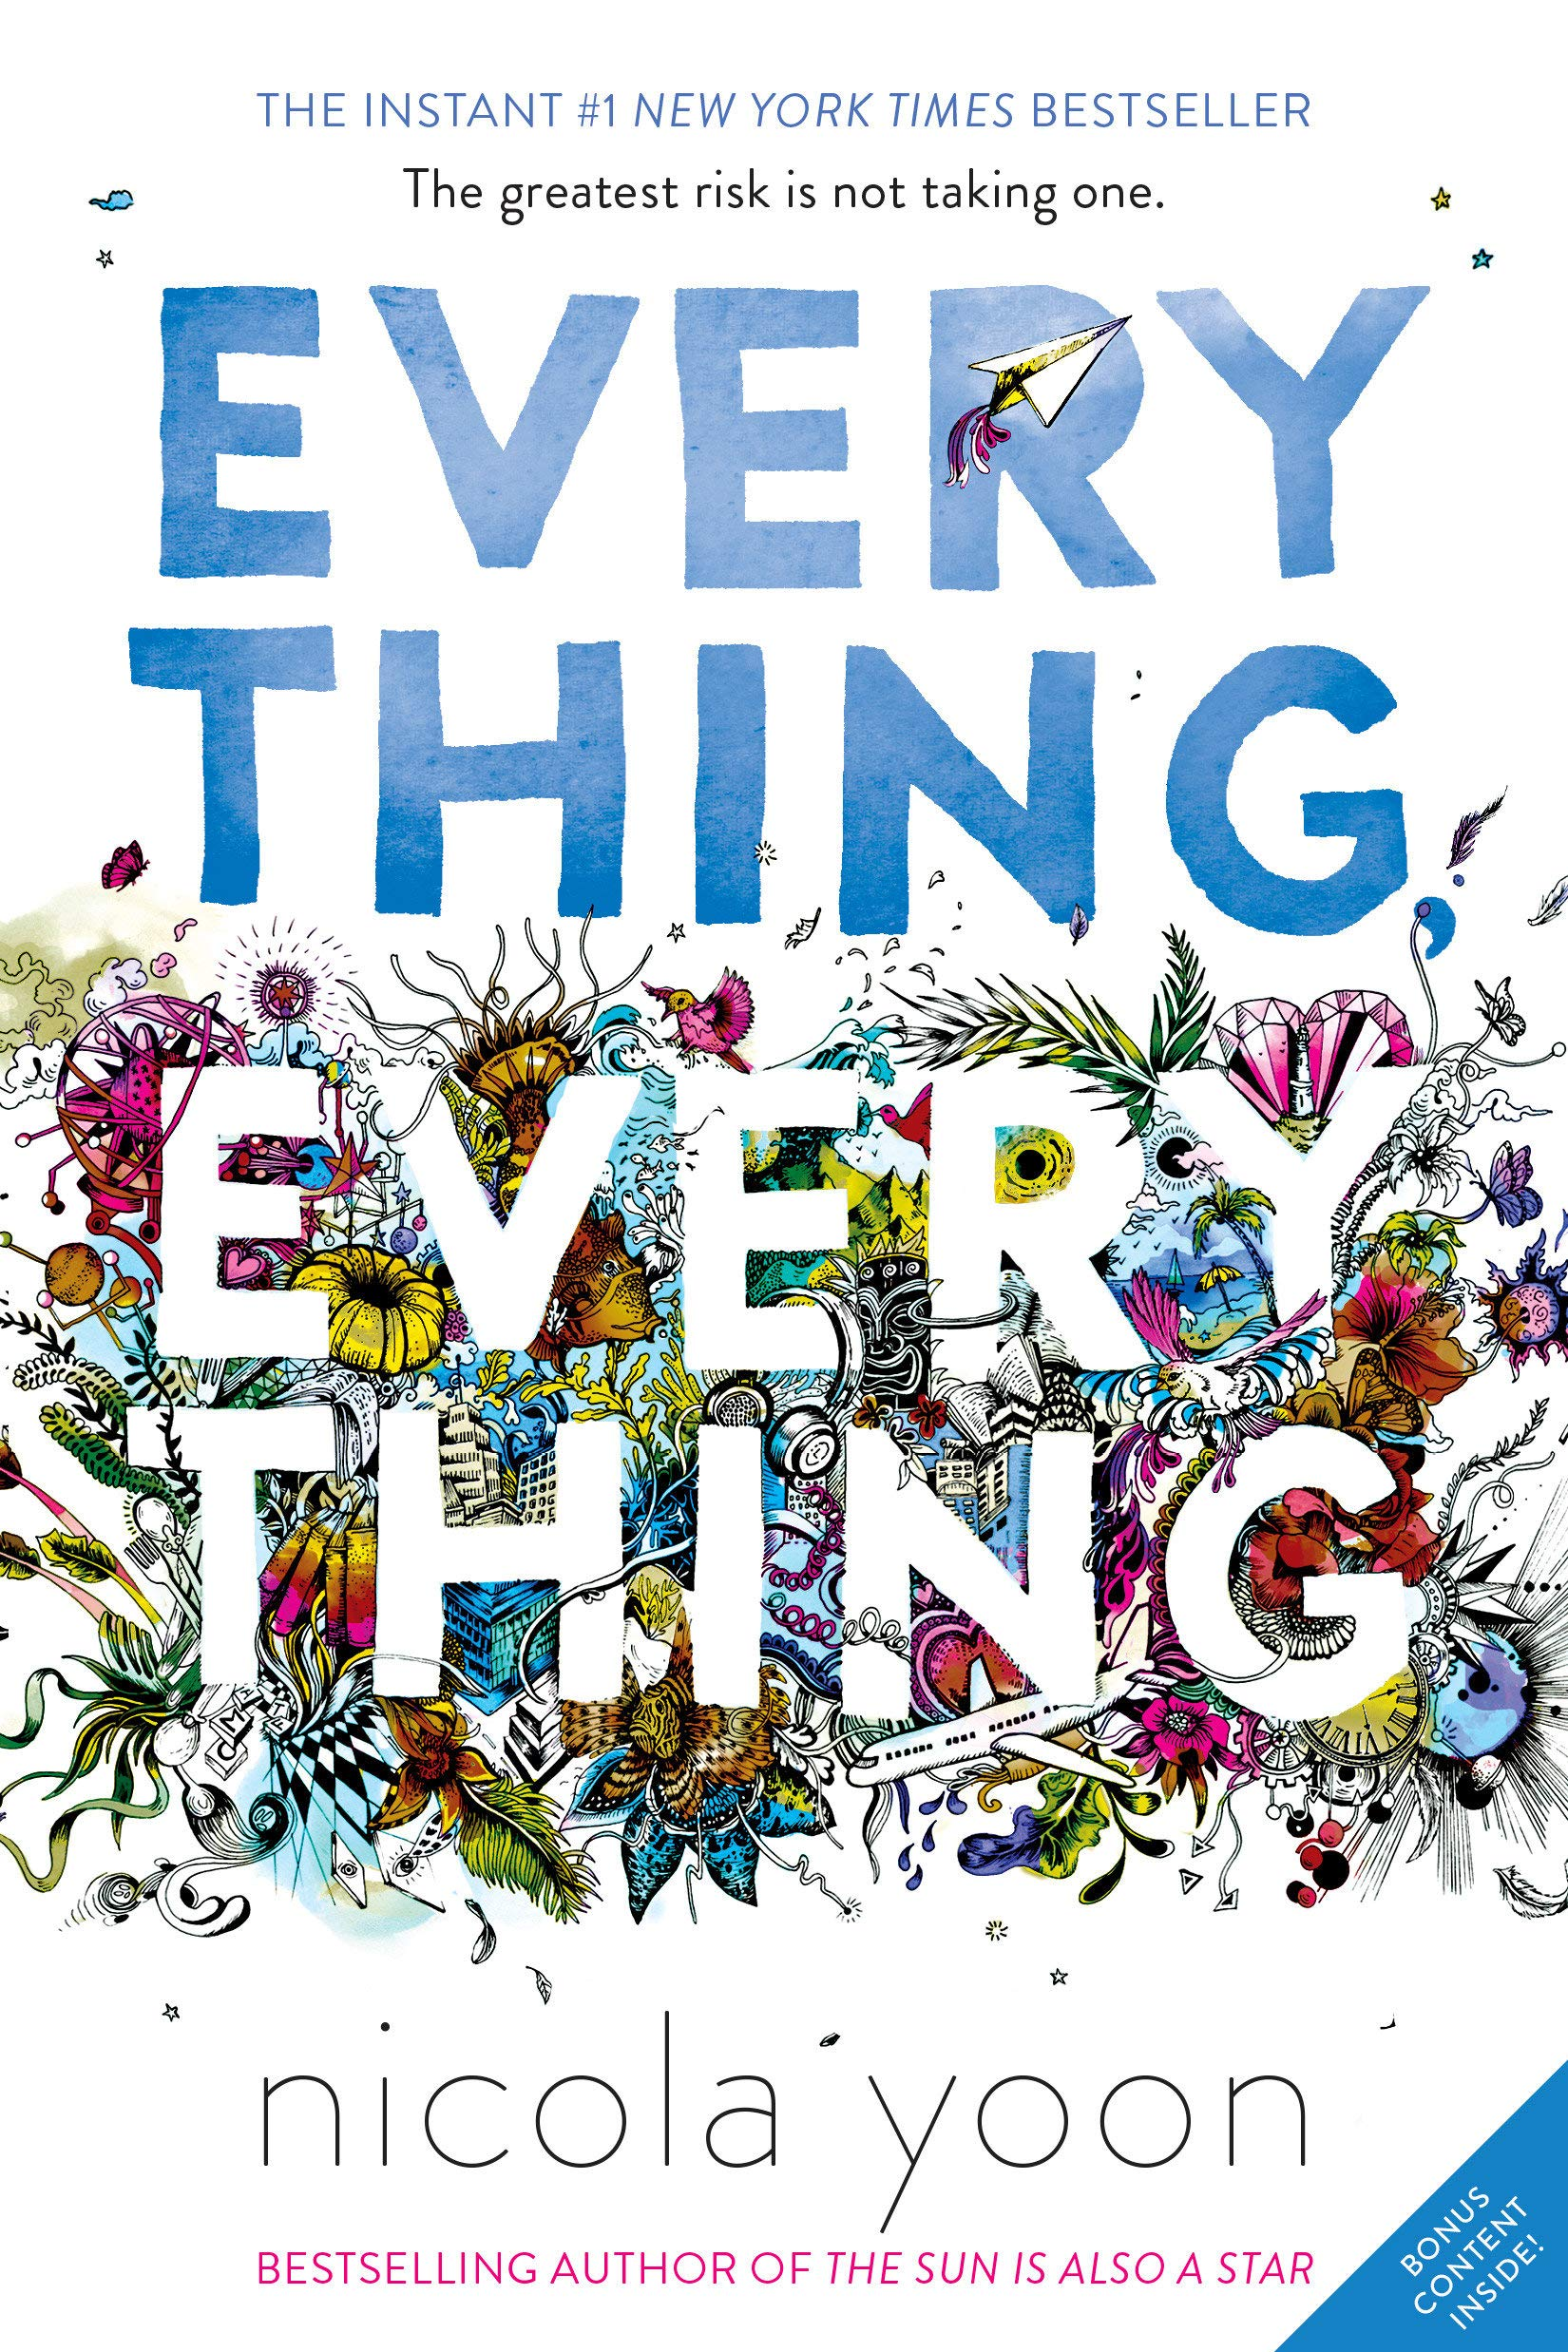 Amazon.com: Everything, Everything (9780553496673): Yoon, Nicola: Books